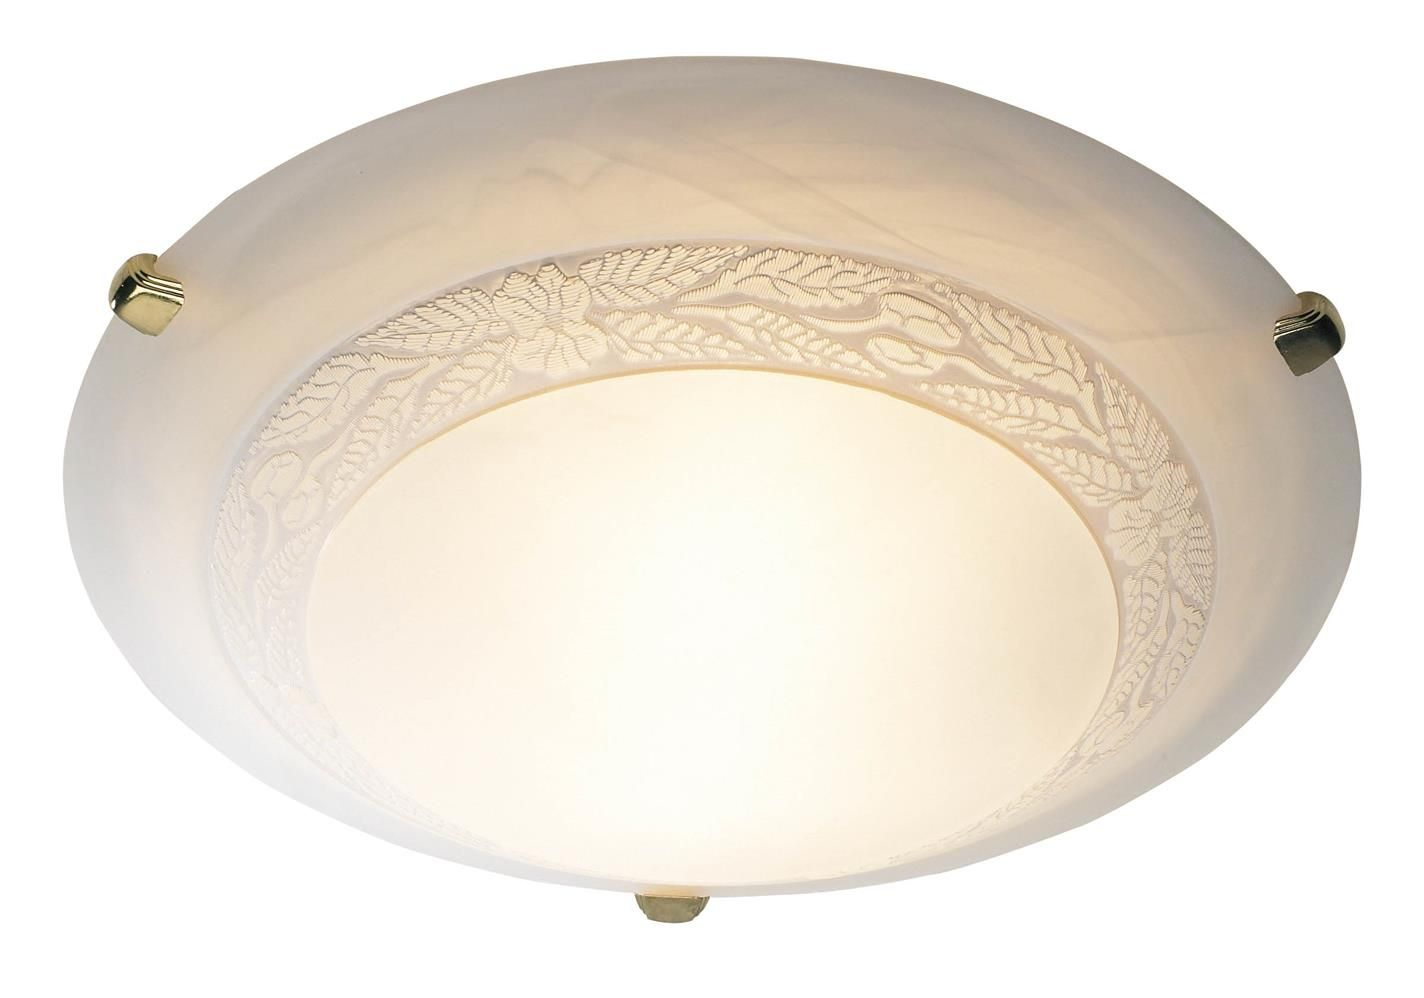 Dam482 Damask 50cm Flush Fitting In Polished Brass Low Ceiling Lighting Ceiling Lights Flush Ceiling Lights